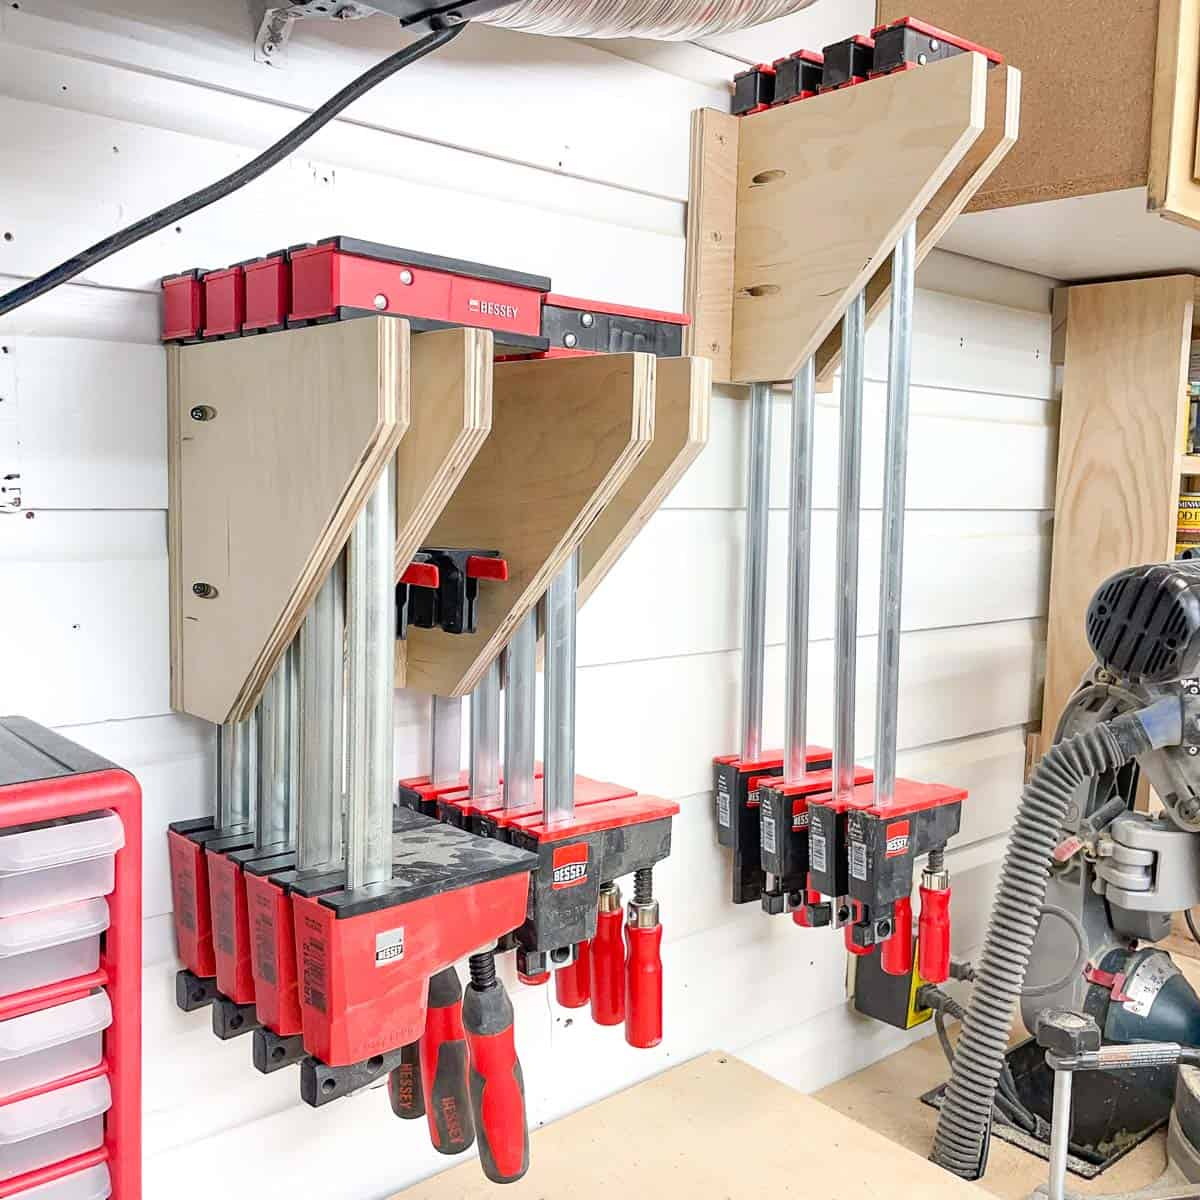 parallel clamp racks on wall behind miter saw station